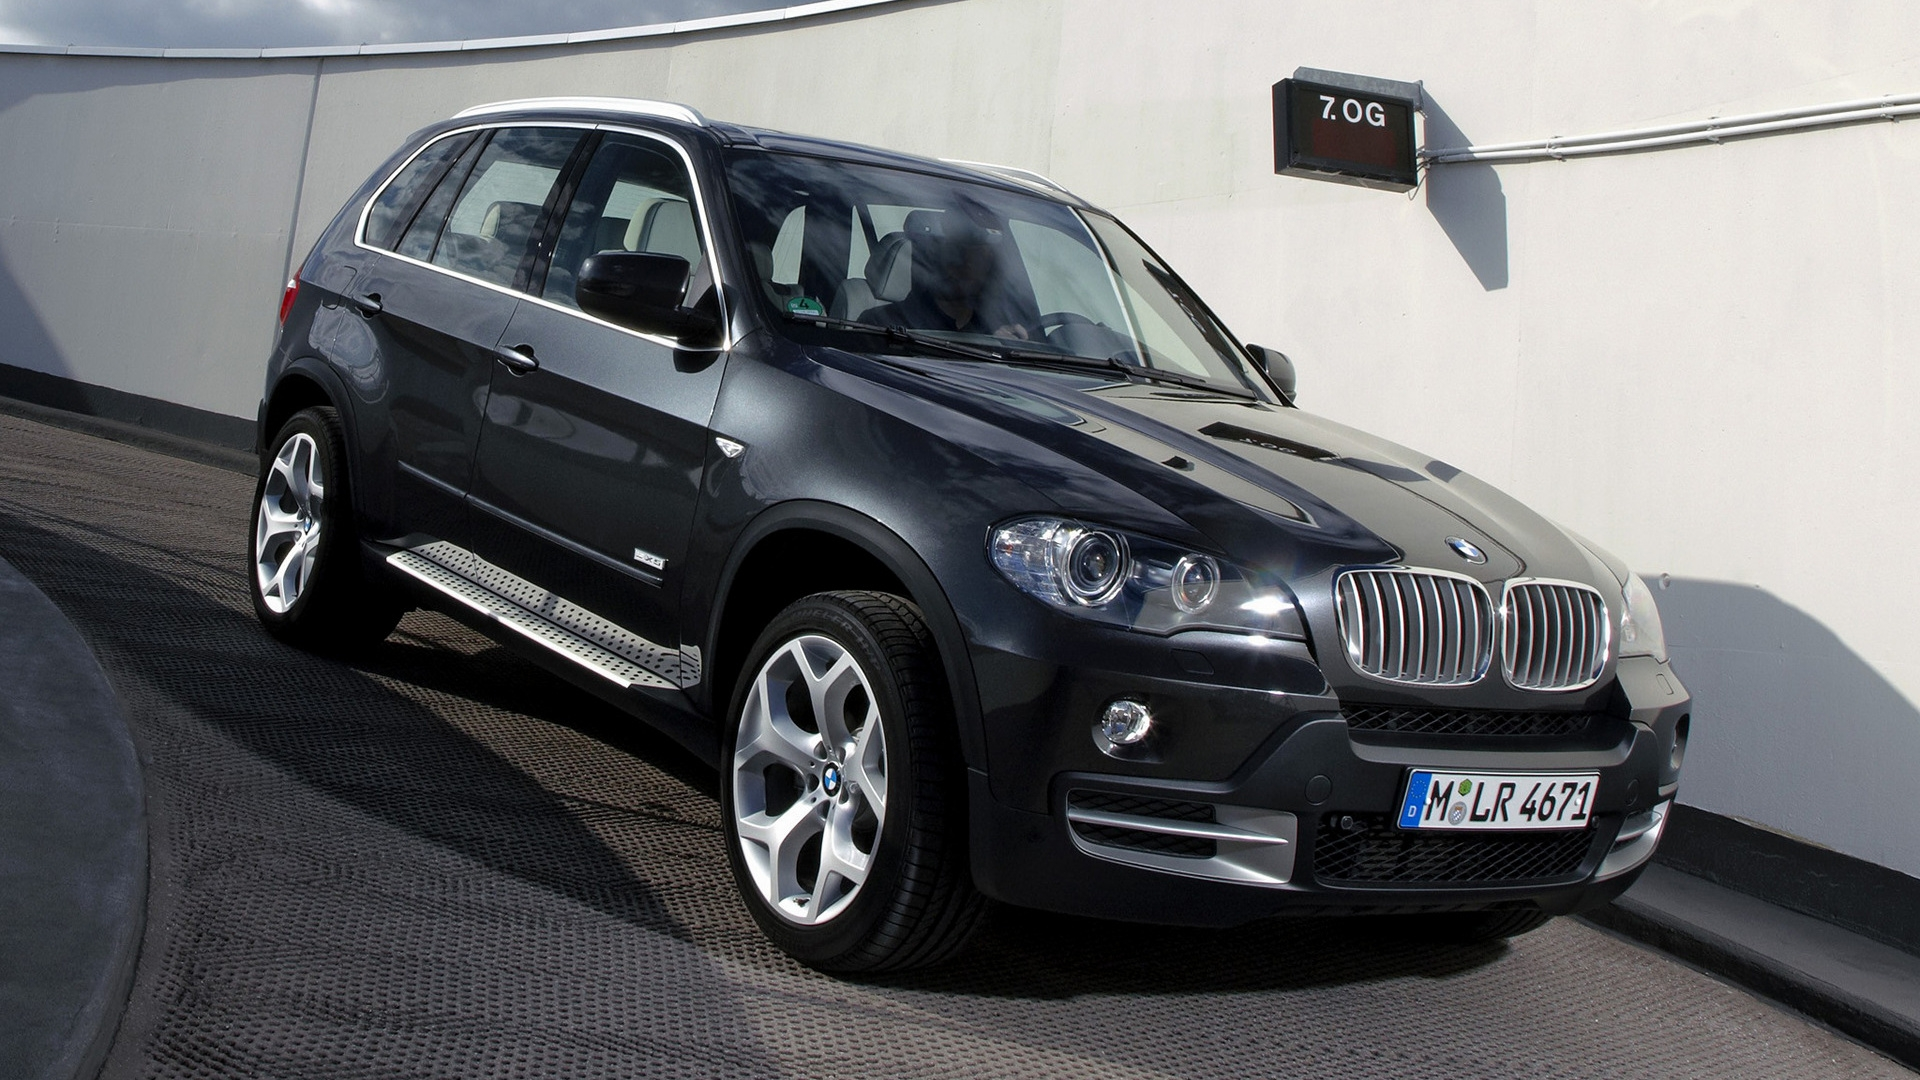 bmw-x-xdrived-year-edition-Bmw-X-d-Year-Edition-And-Hd-Im-wallpaper-wp3403441